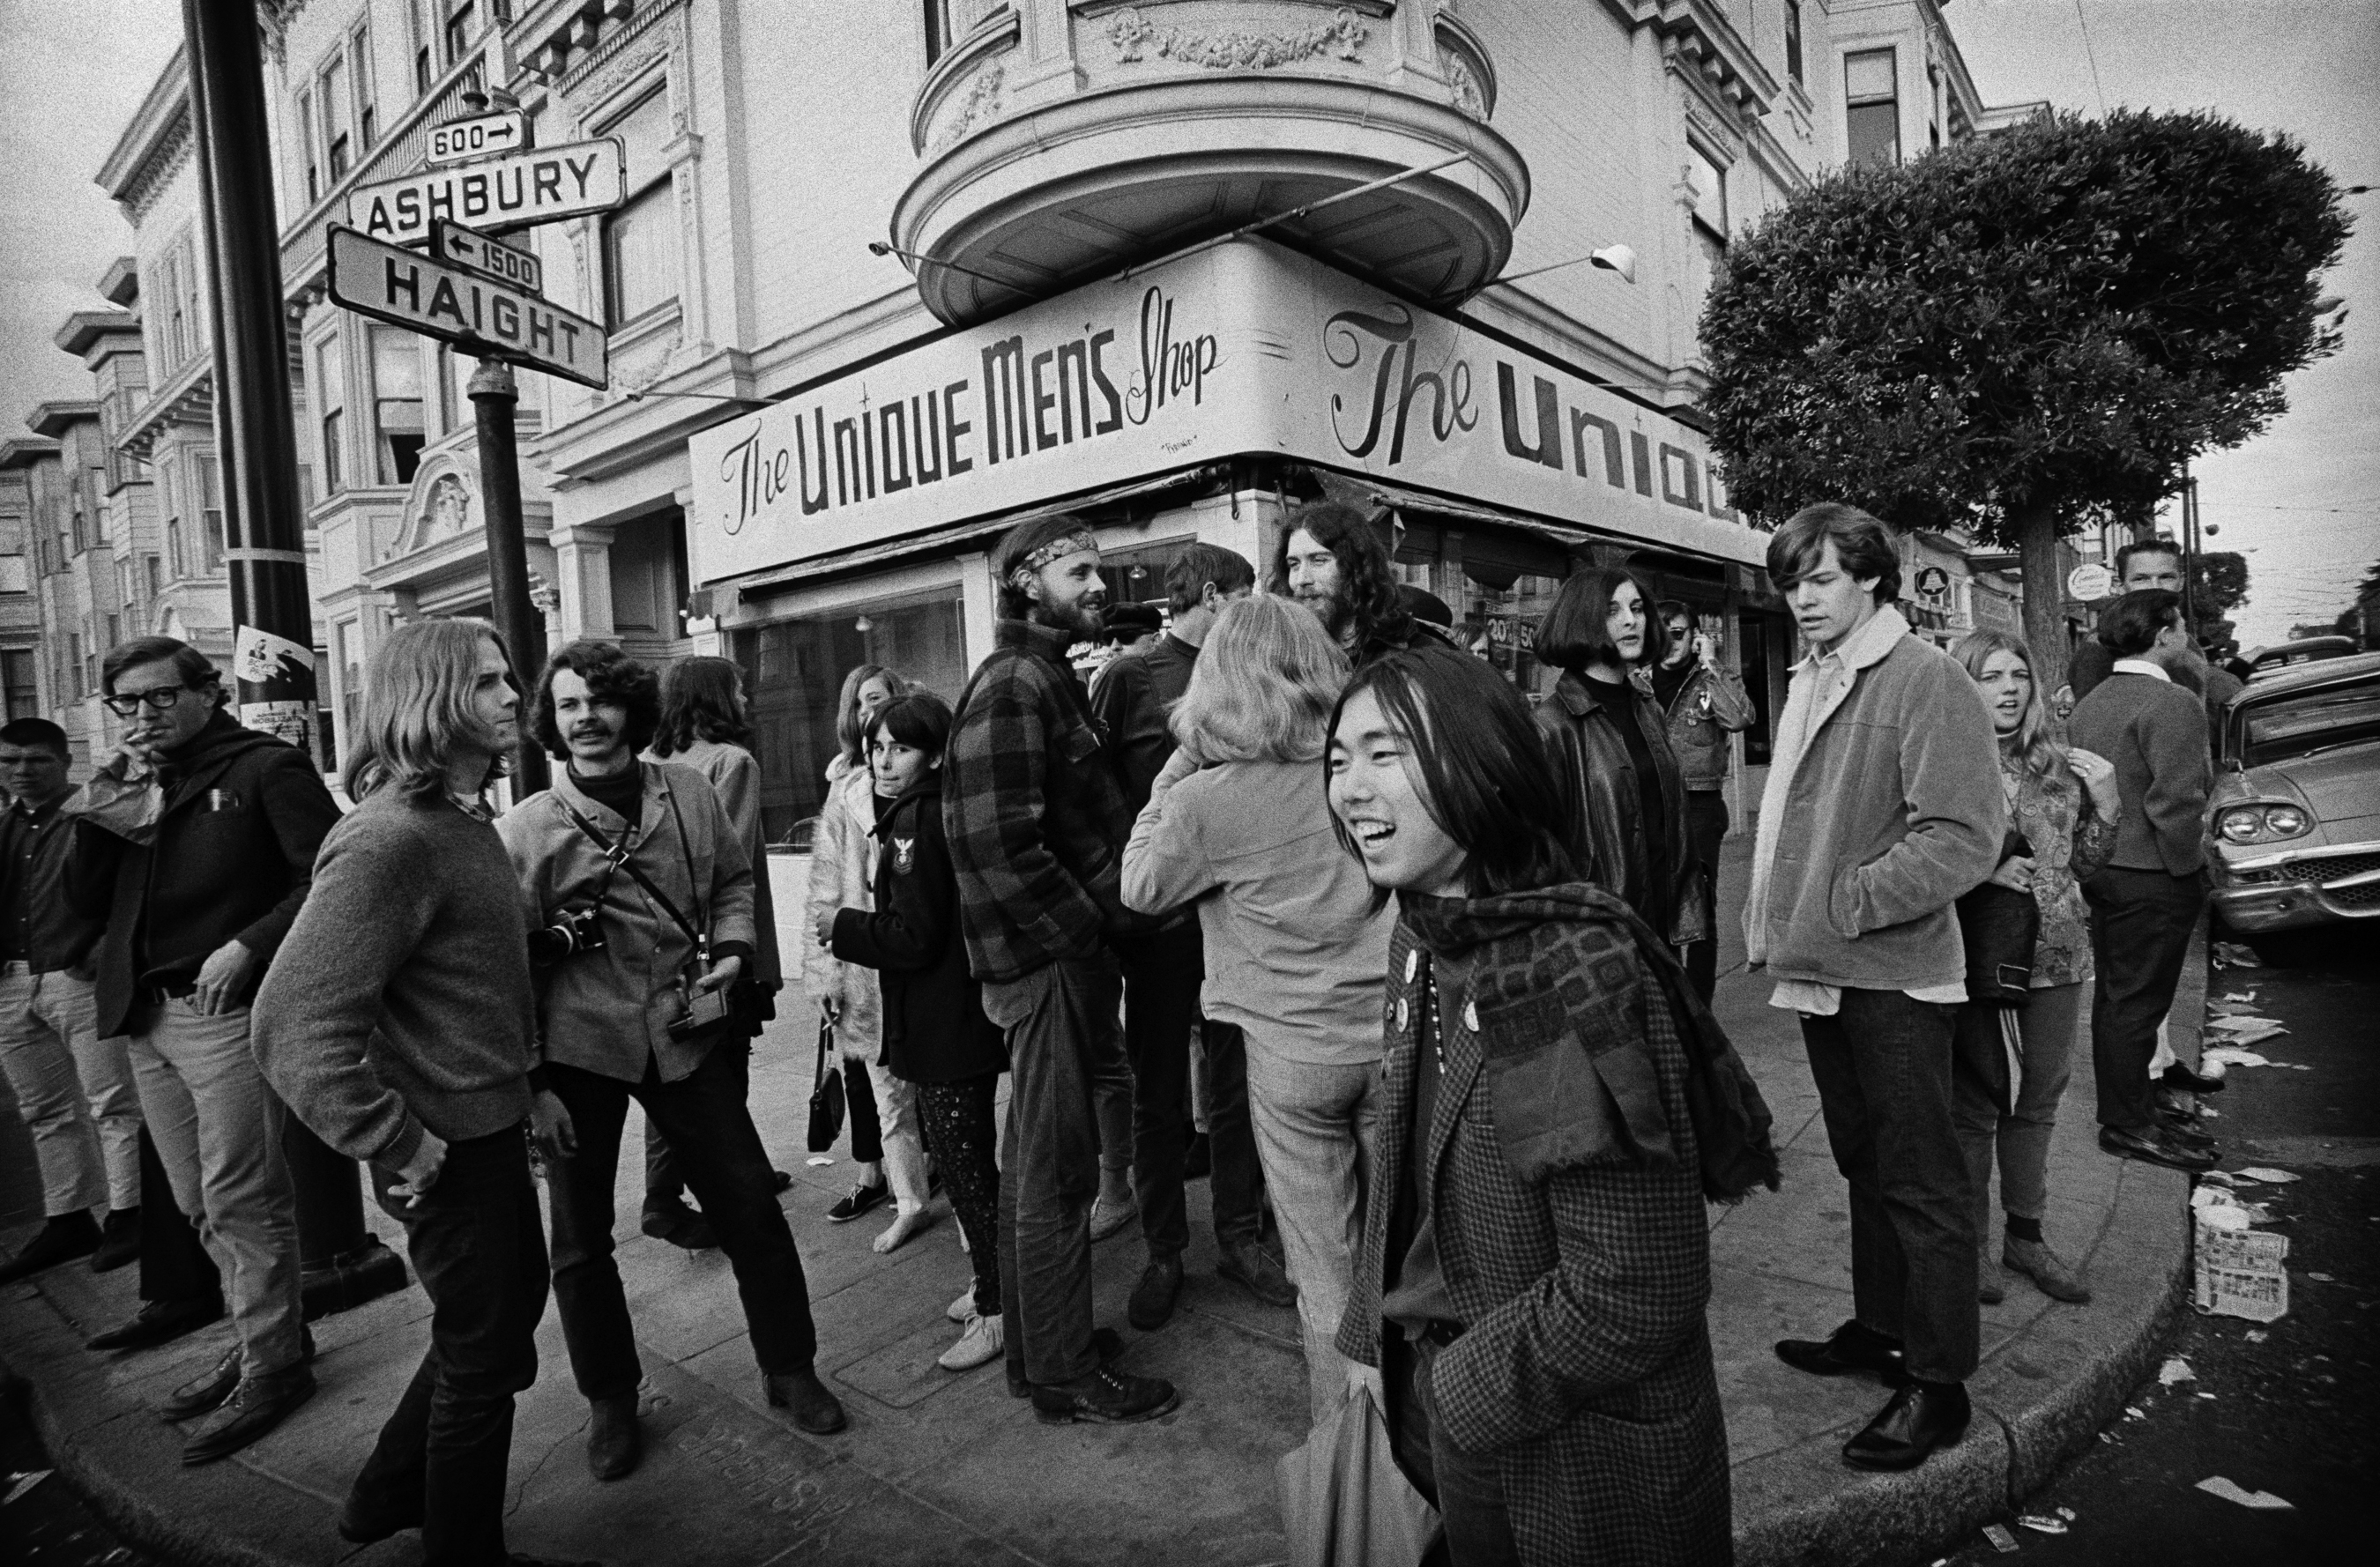 A crowd at the corner of Haight and Ashbury Streets